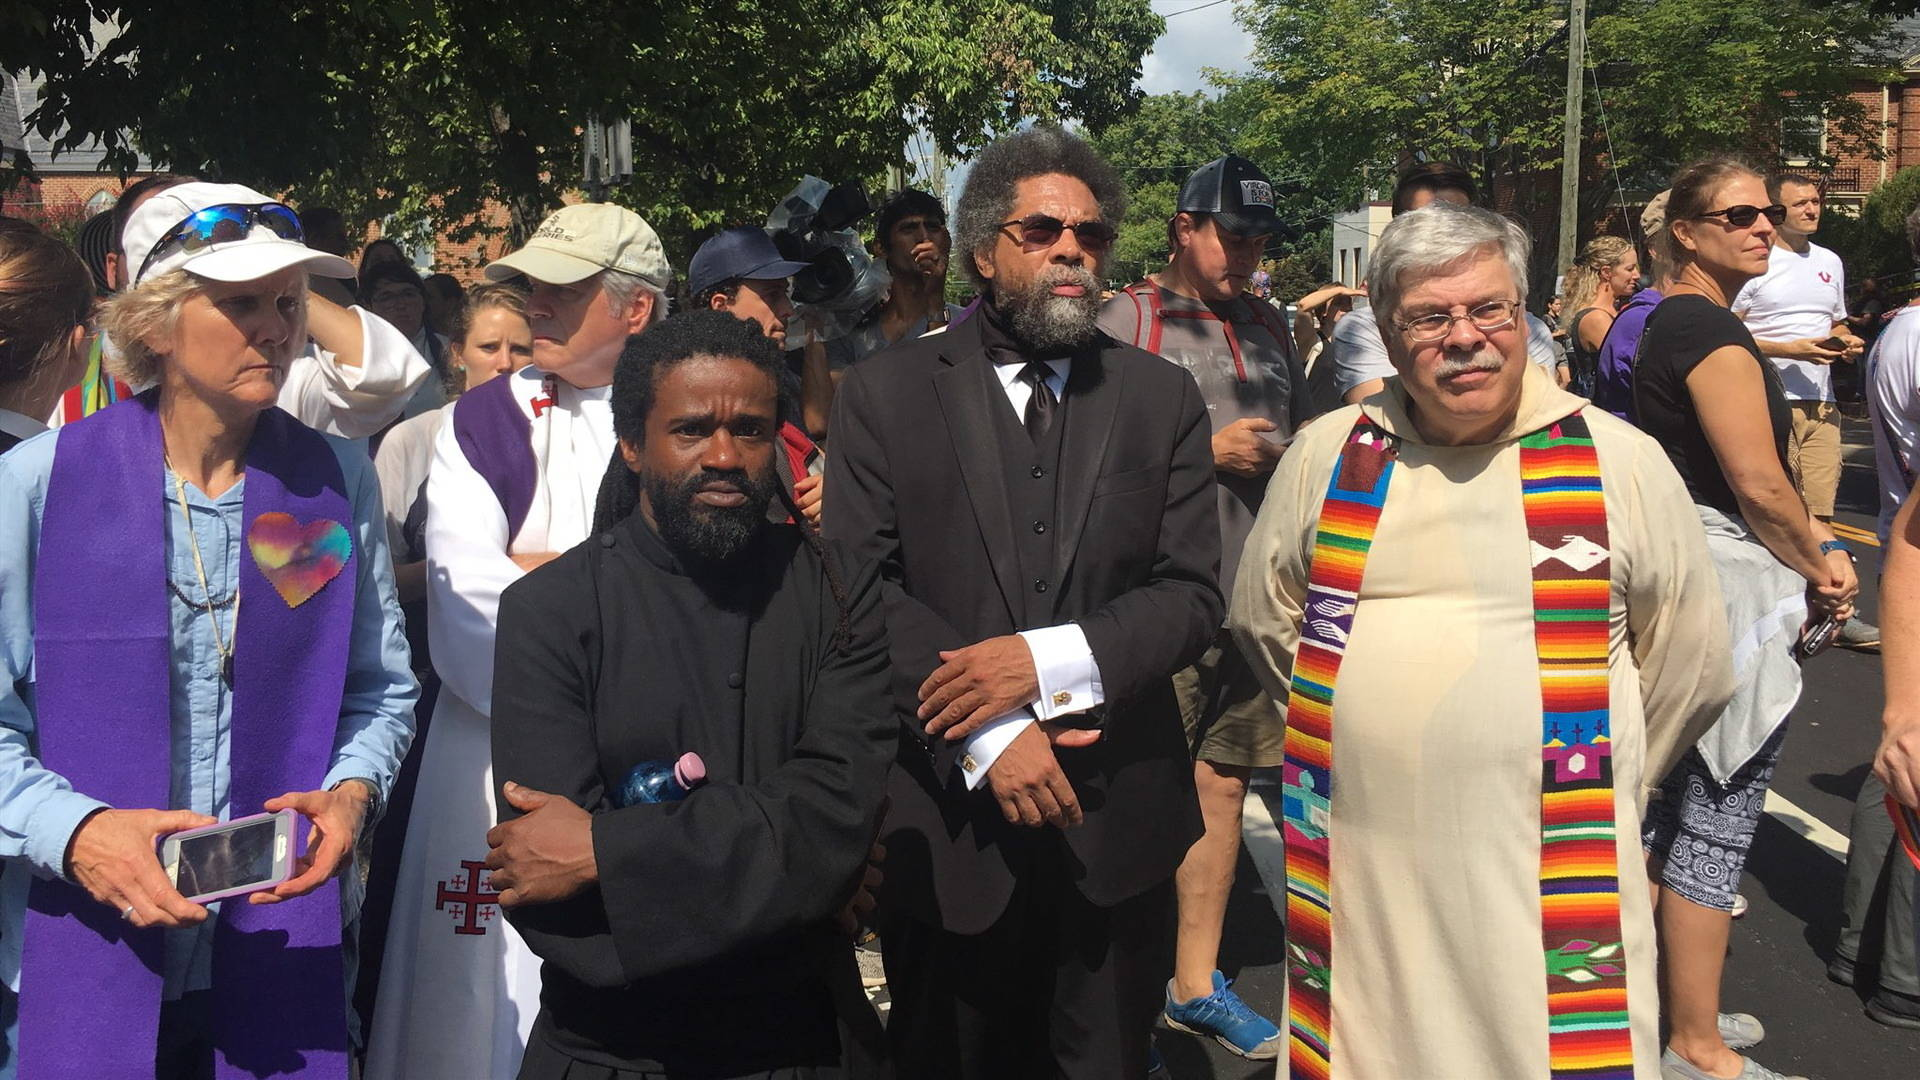 Cornel West & Rev. Toni Blackmon: Clergy in Charlottesville Were Trapped by Torch-Wielding Nazis